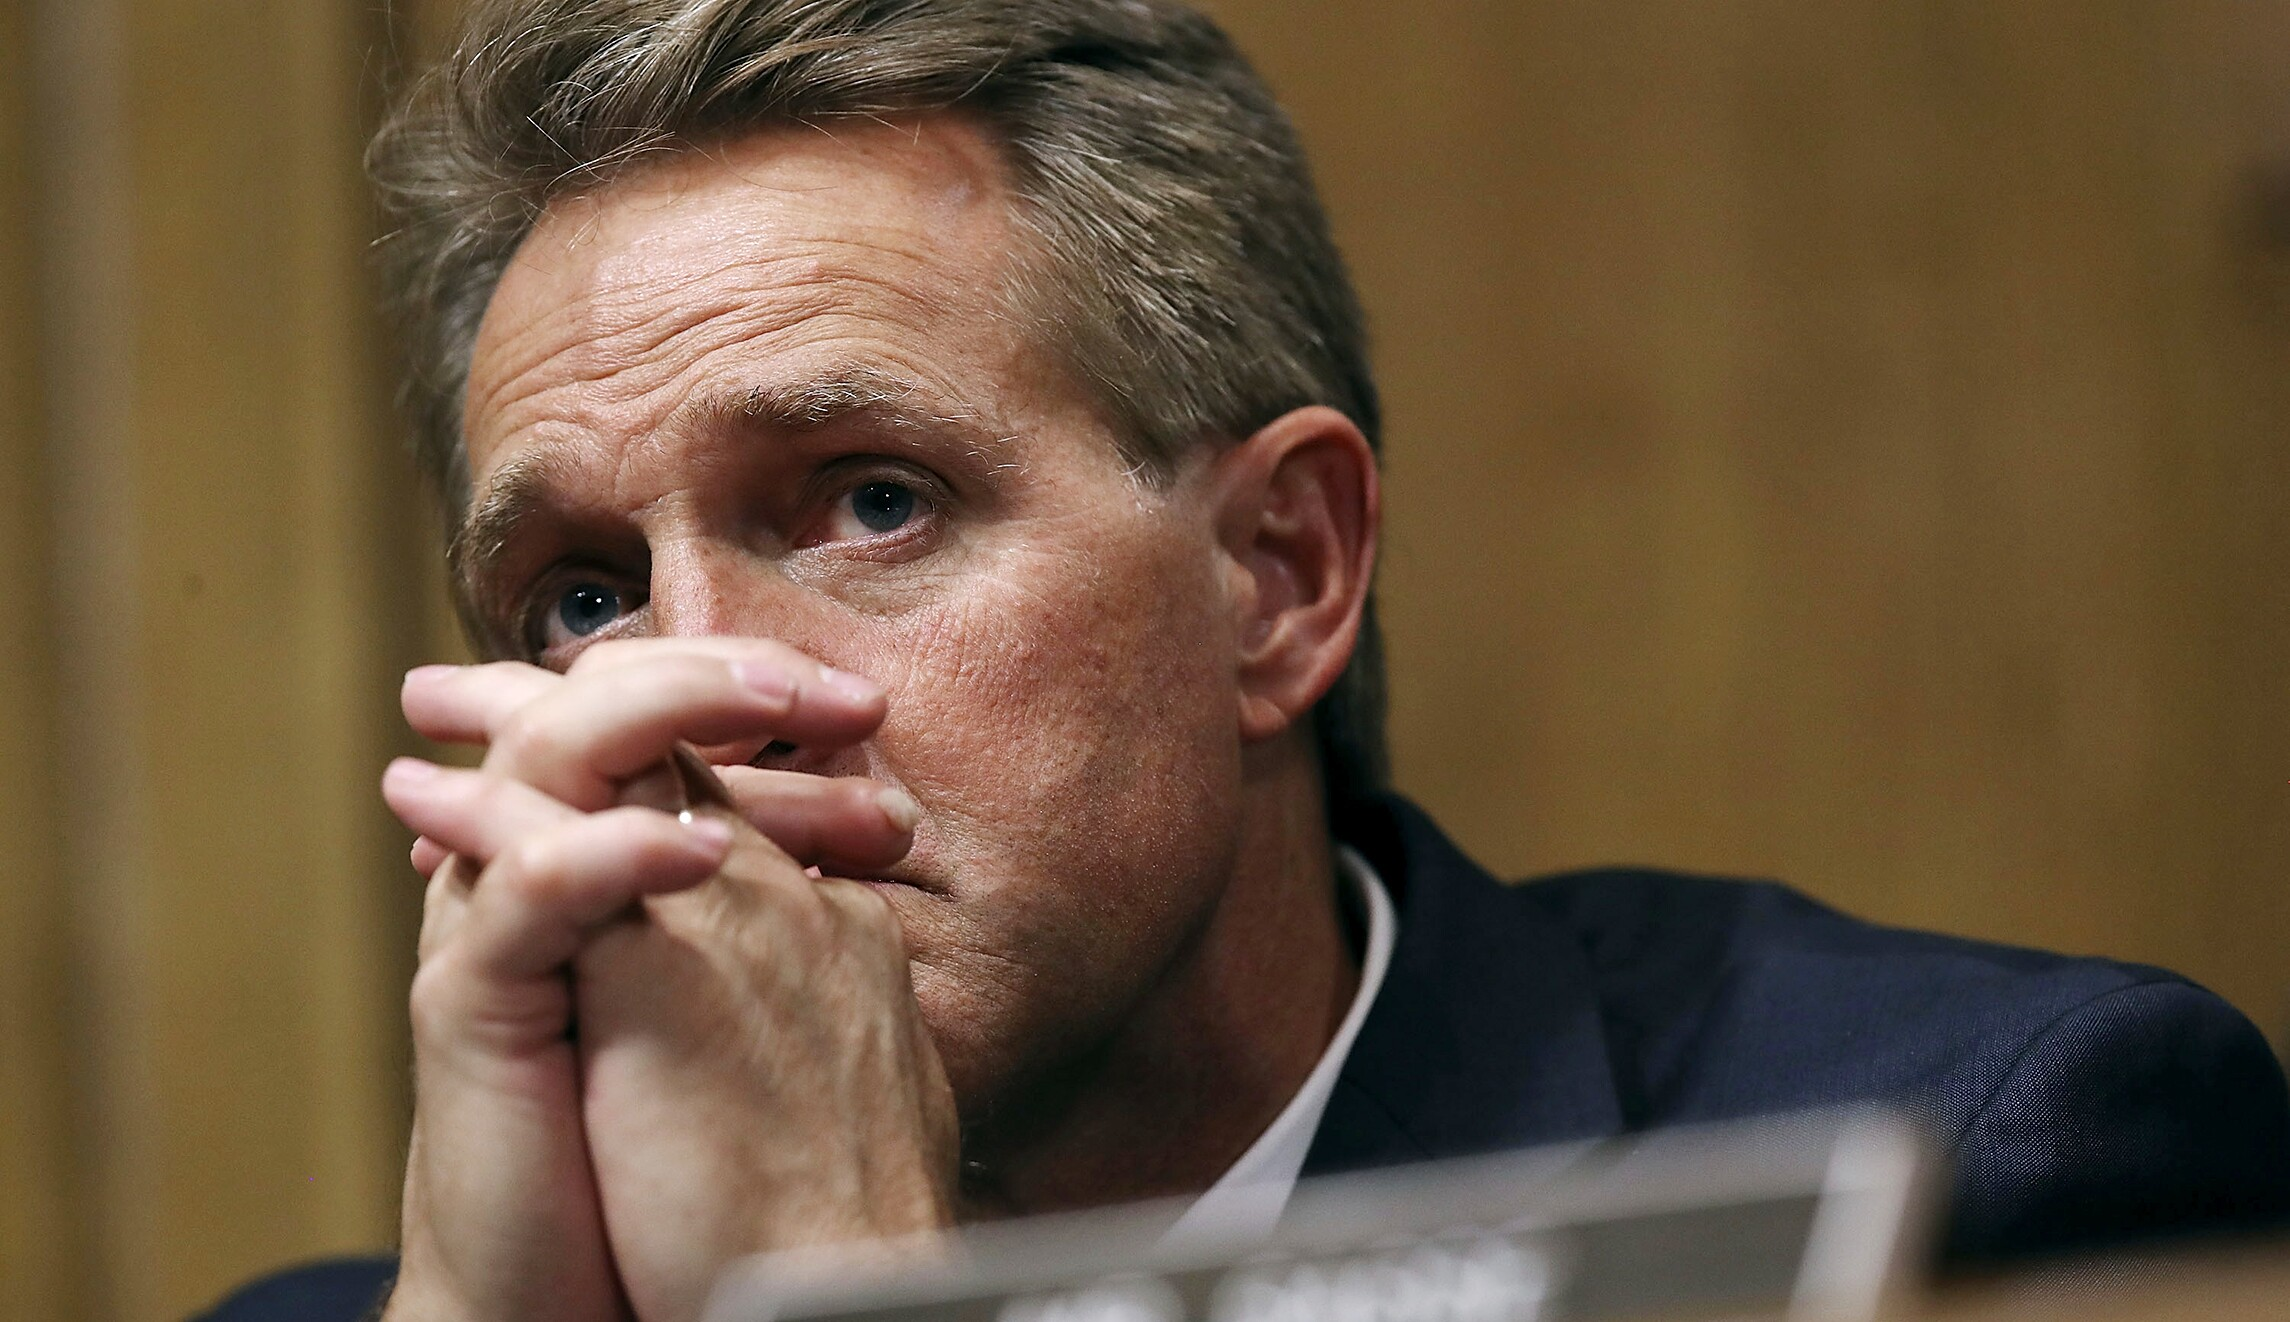 Sen. Jeff flake, R-Ariz., appears at a hearing in Washington, D.C.